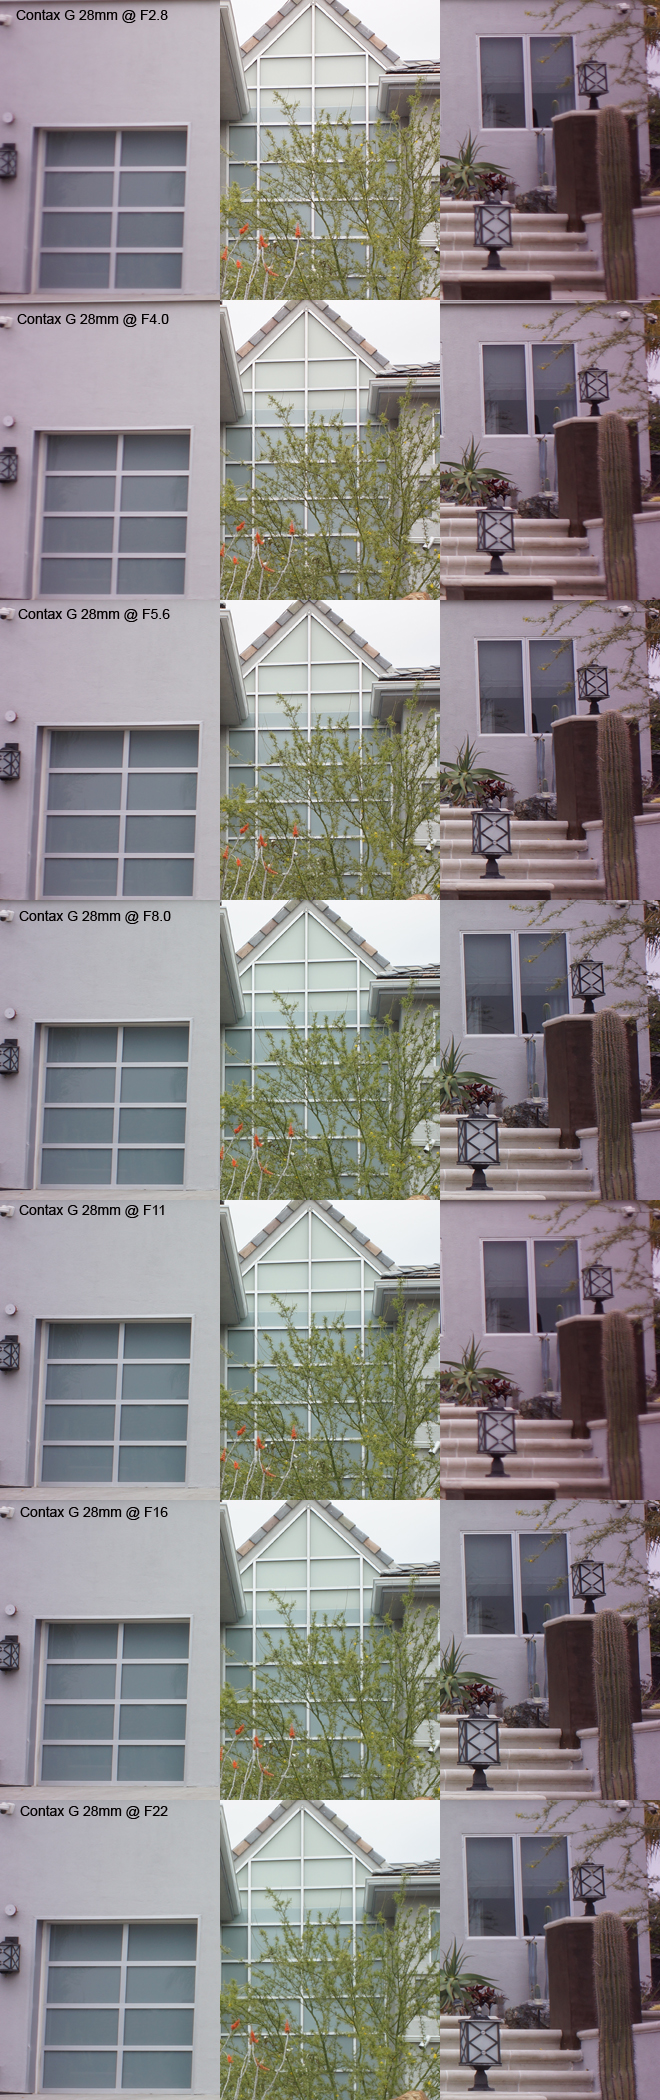 "Contax G 28mm ""Setup One: Wide View"" Review Results"